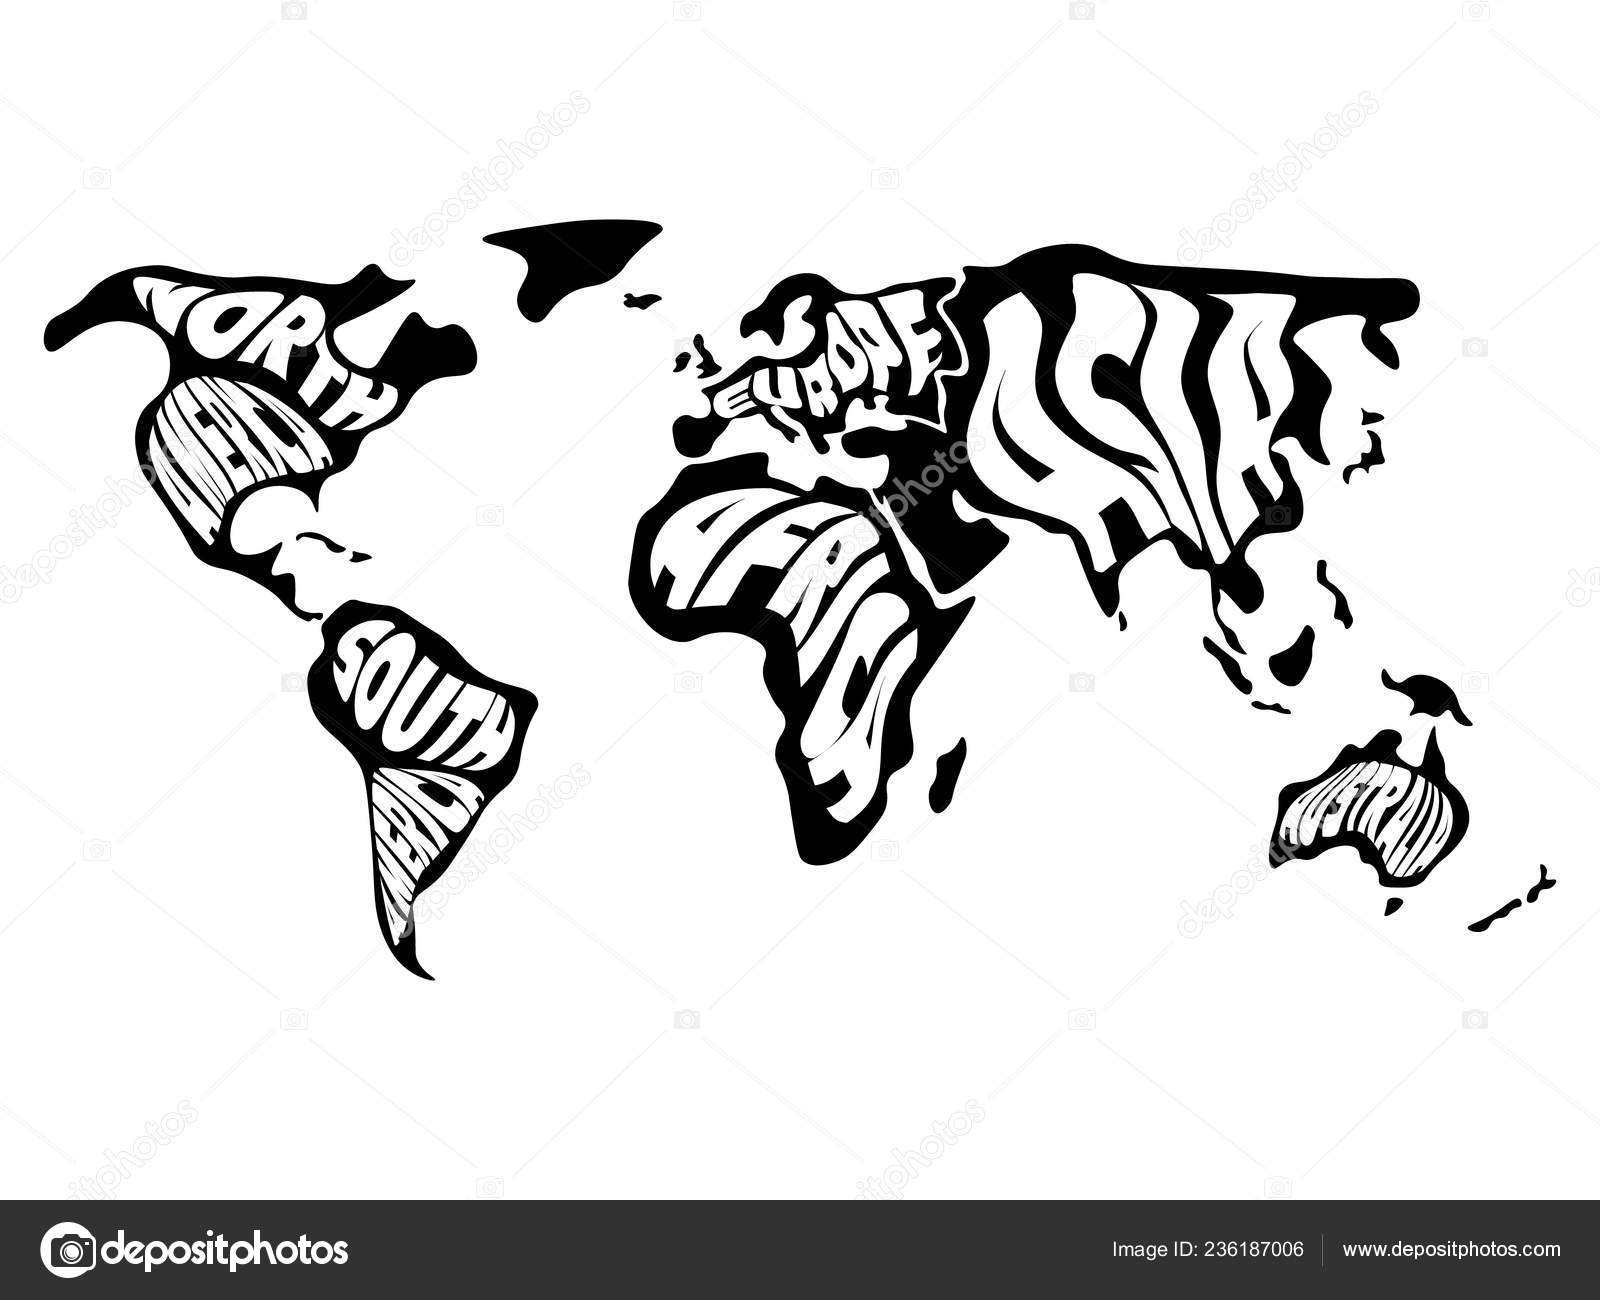 World map divided into six continents. Name of each ... on world map with all continents, world map unlabeled, earth divided into continents, atlas divided into continents, world map of continents identified, names of continents, world map outline continents, simple map of continents,